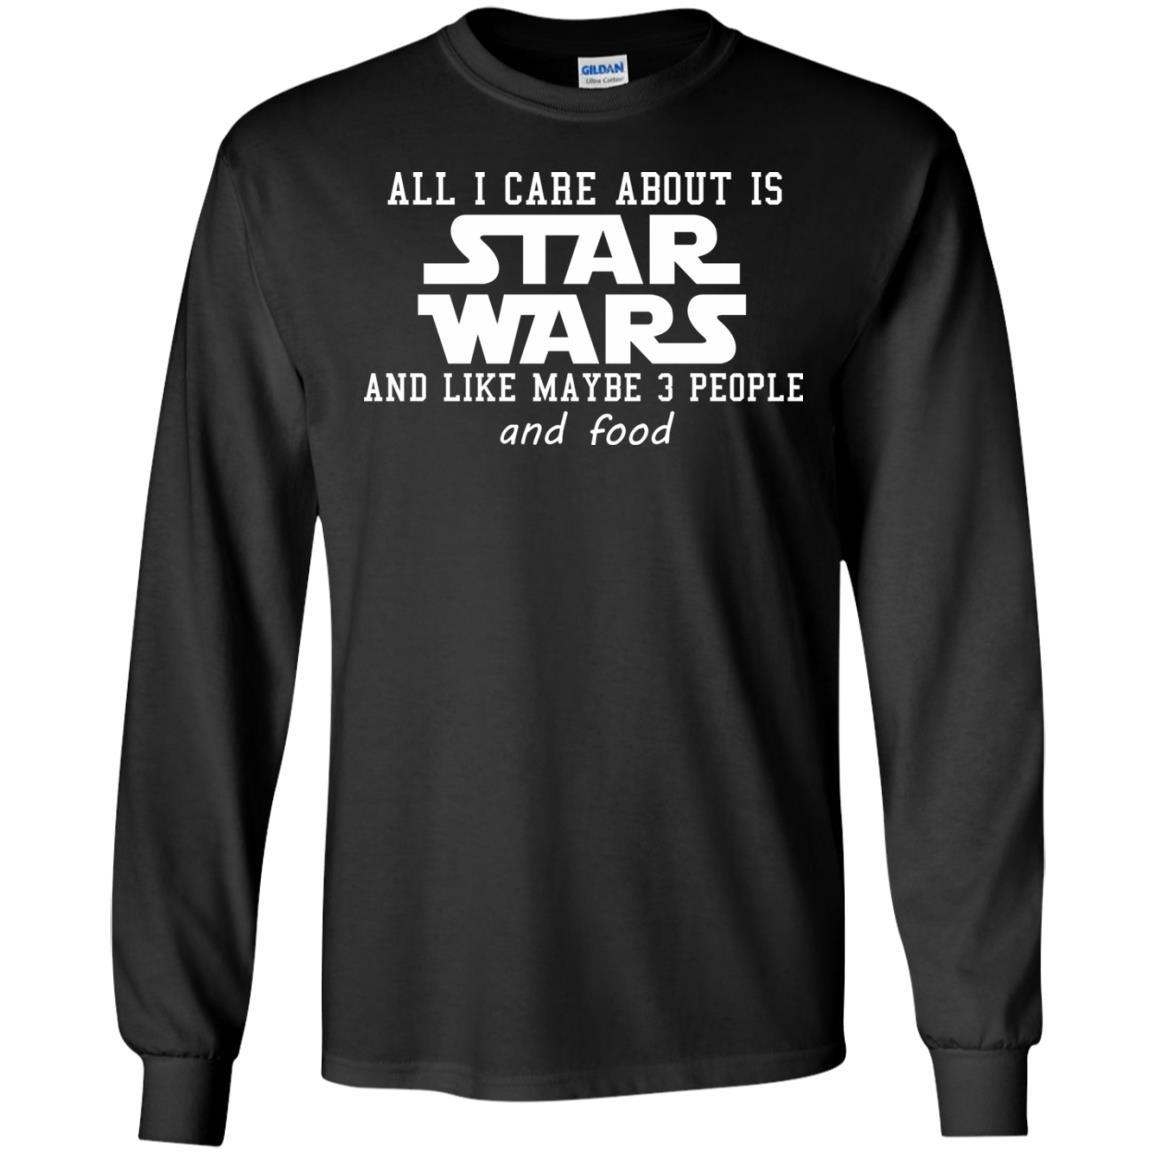 image 603 - All I care about is Star Wars & like maybe 3 people & food